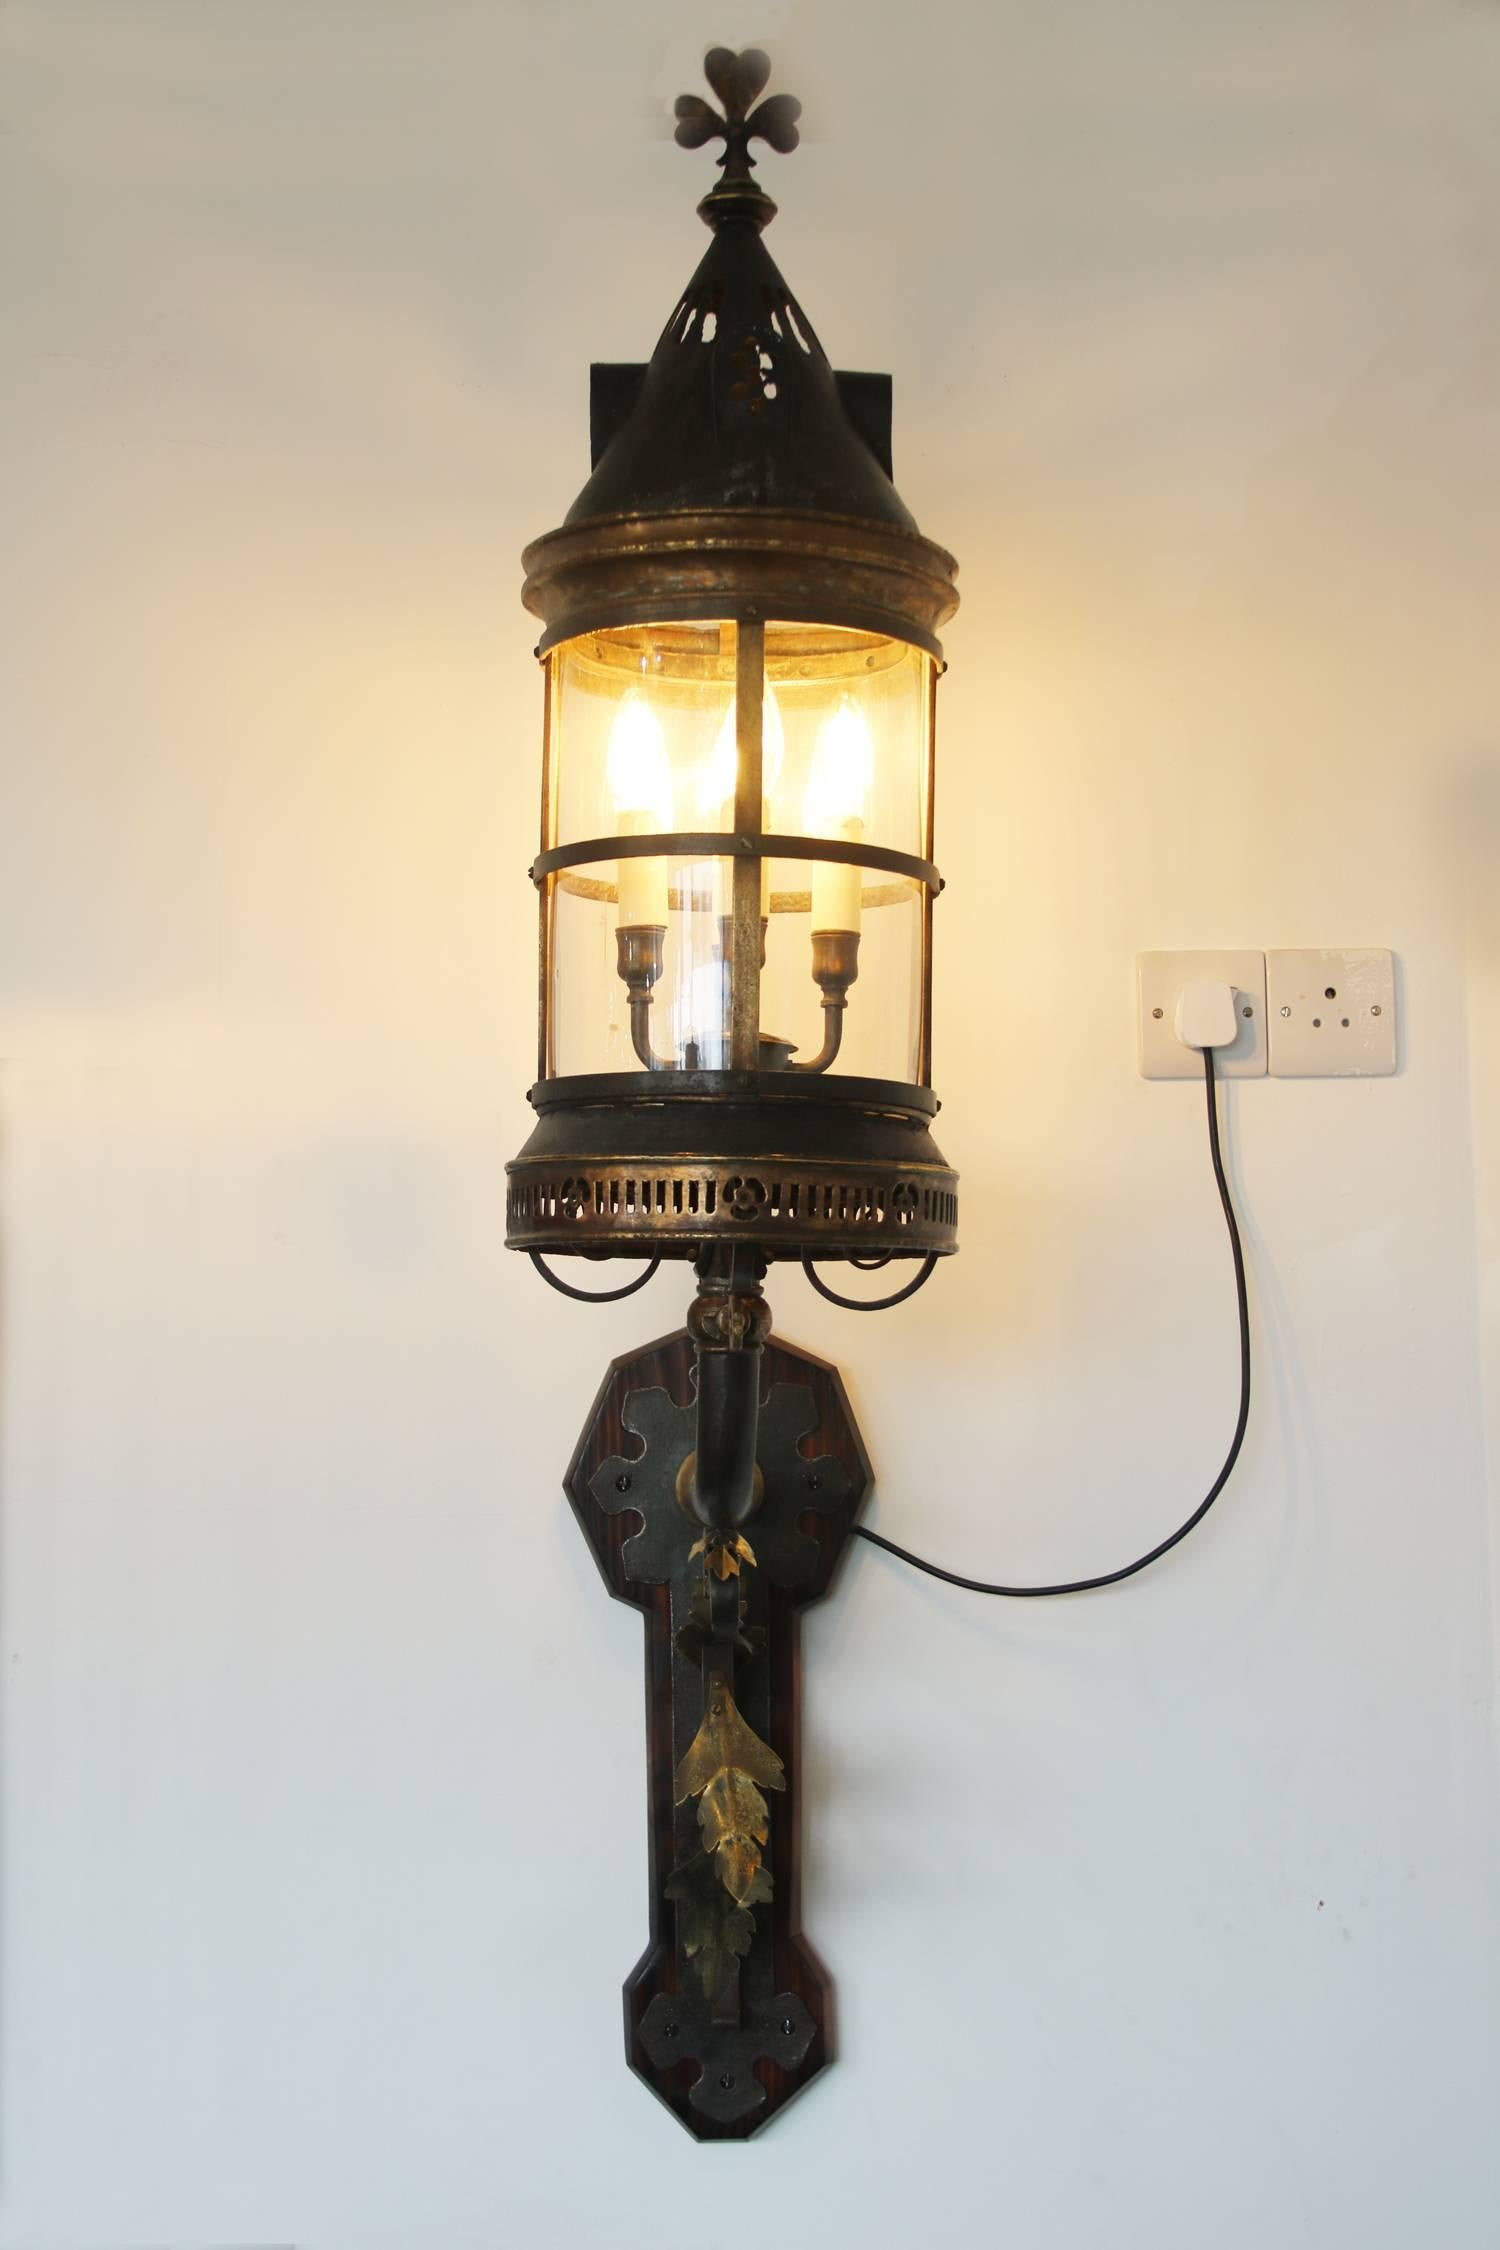 Large Late 19th Century Arts and Crafts Wall Lantern For Sale at 1stdibs